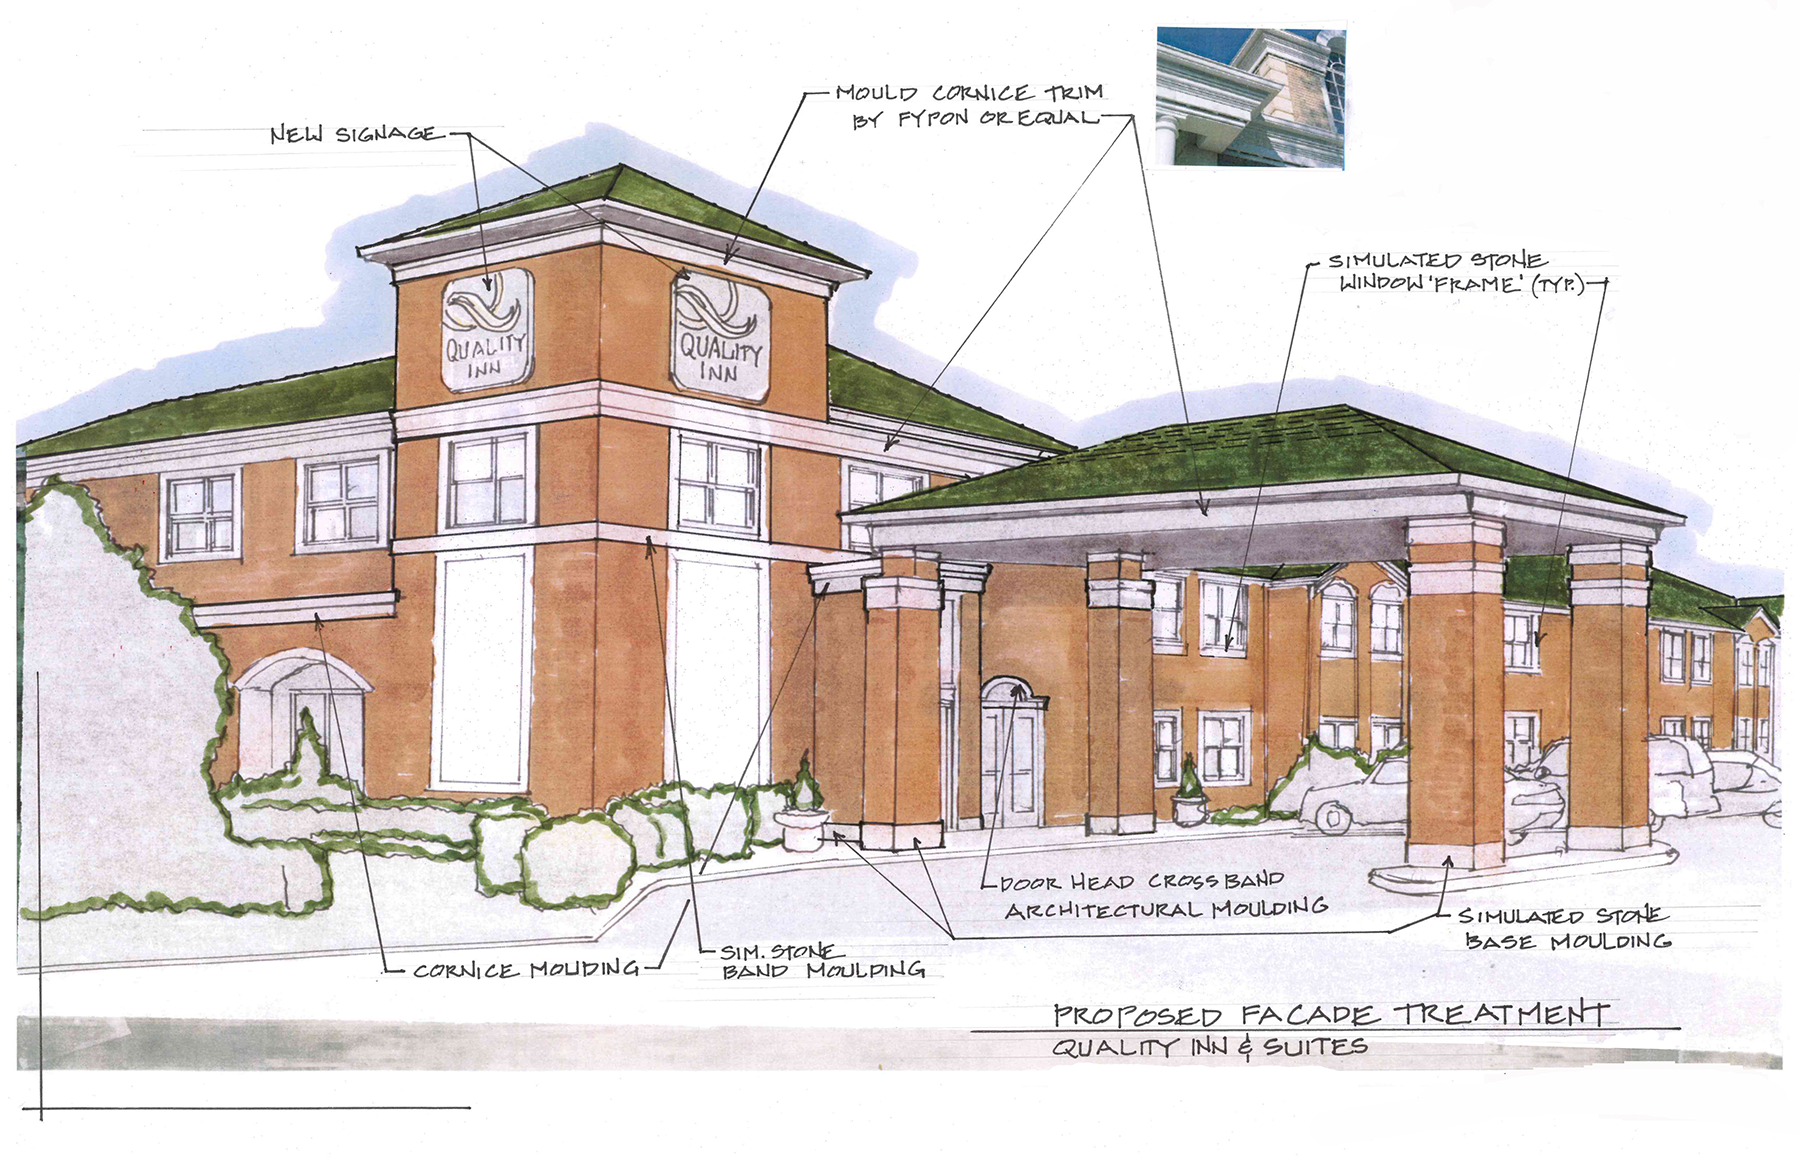 Drawing of the front of a hotel